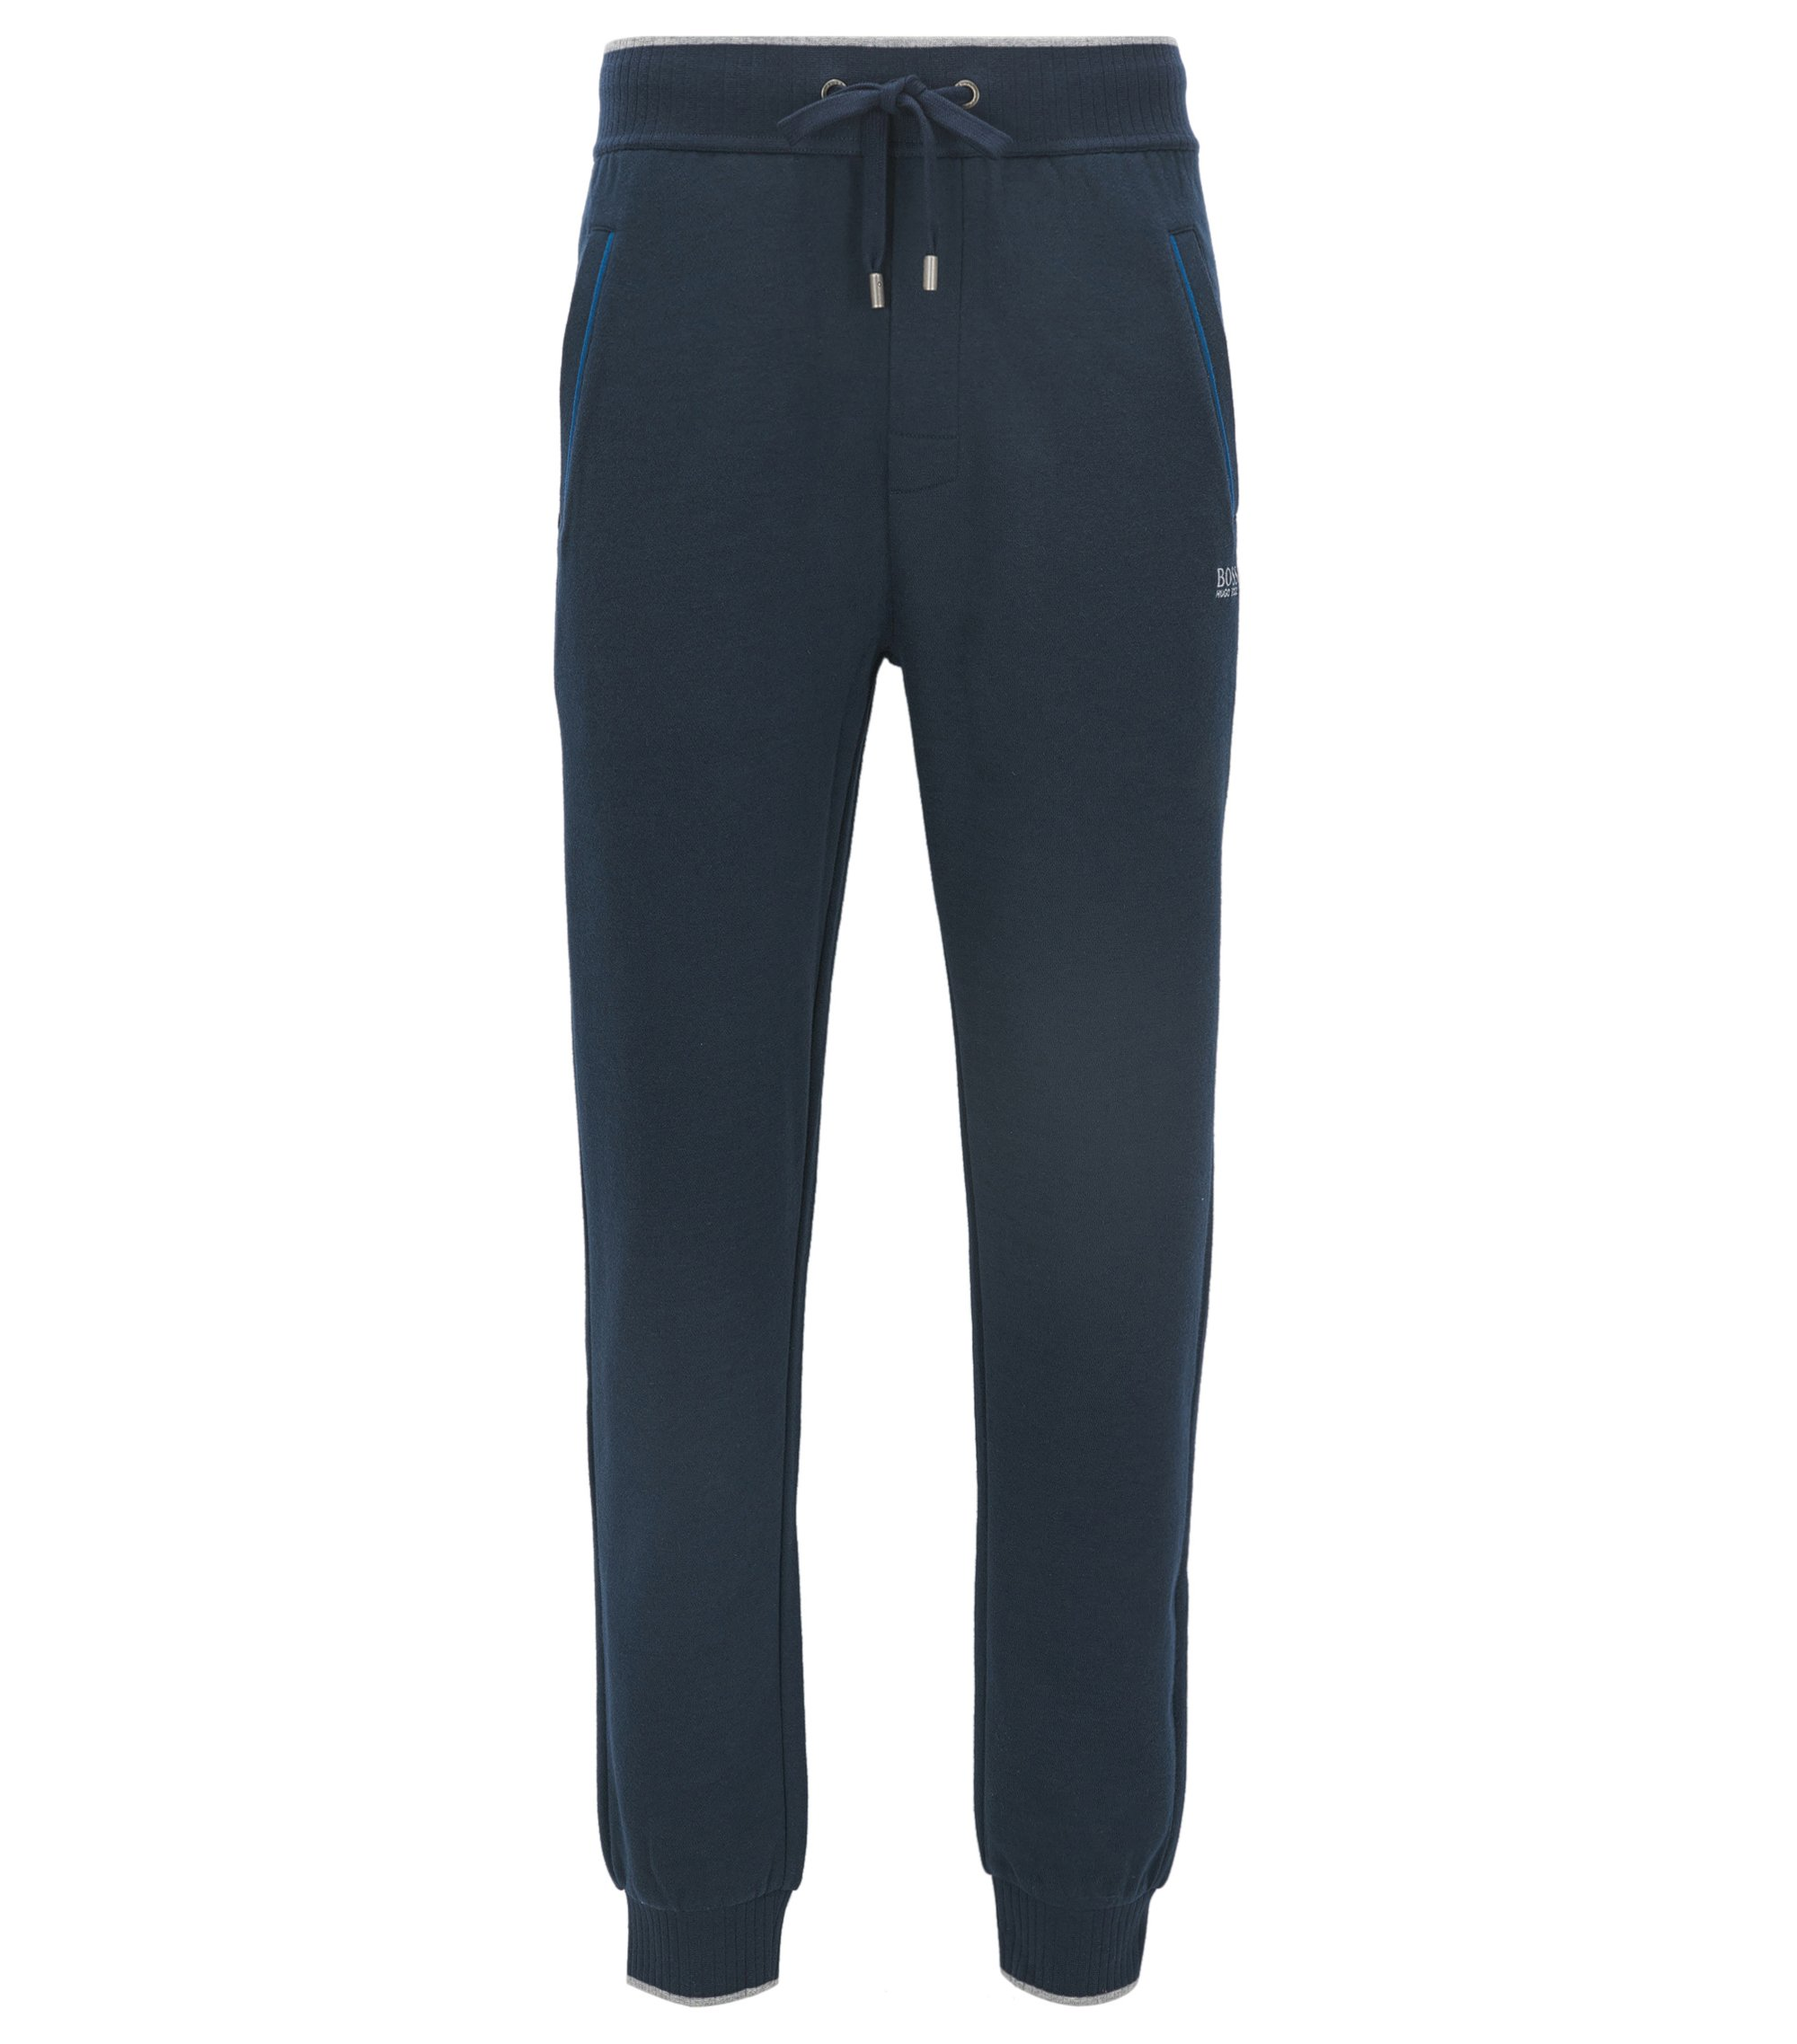 Piped Cotton Blend Jersey Lounge Pant | Authentic Pant, Dark Blue